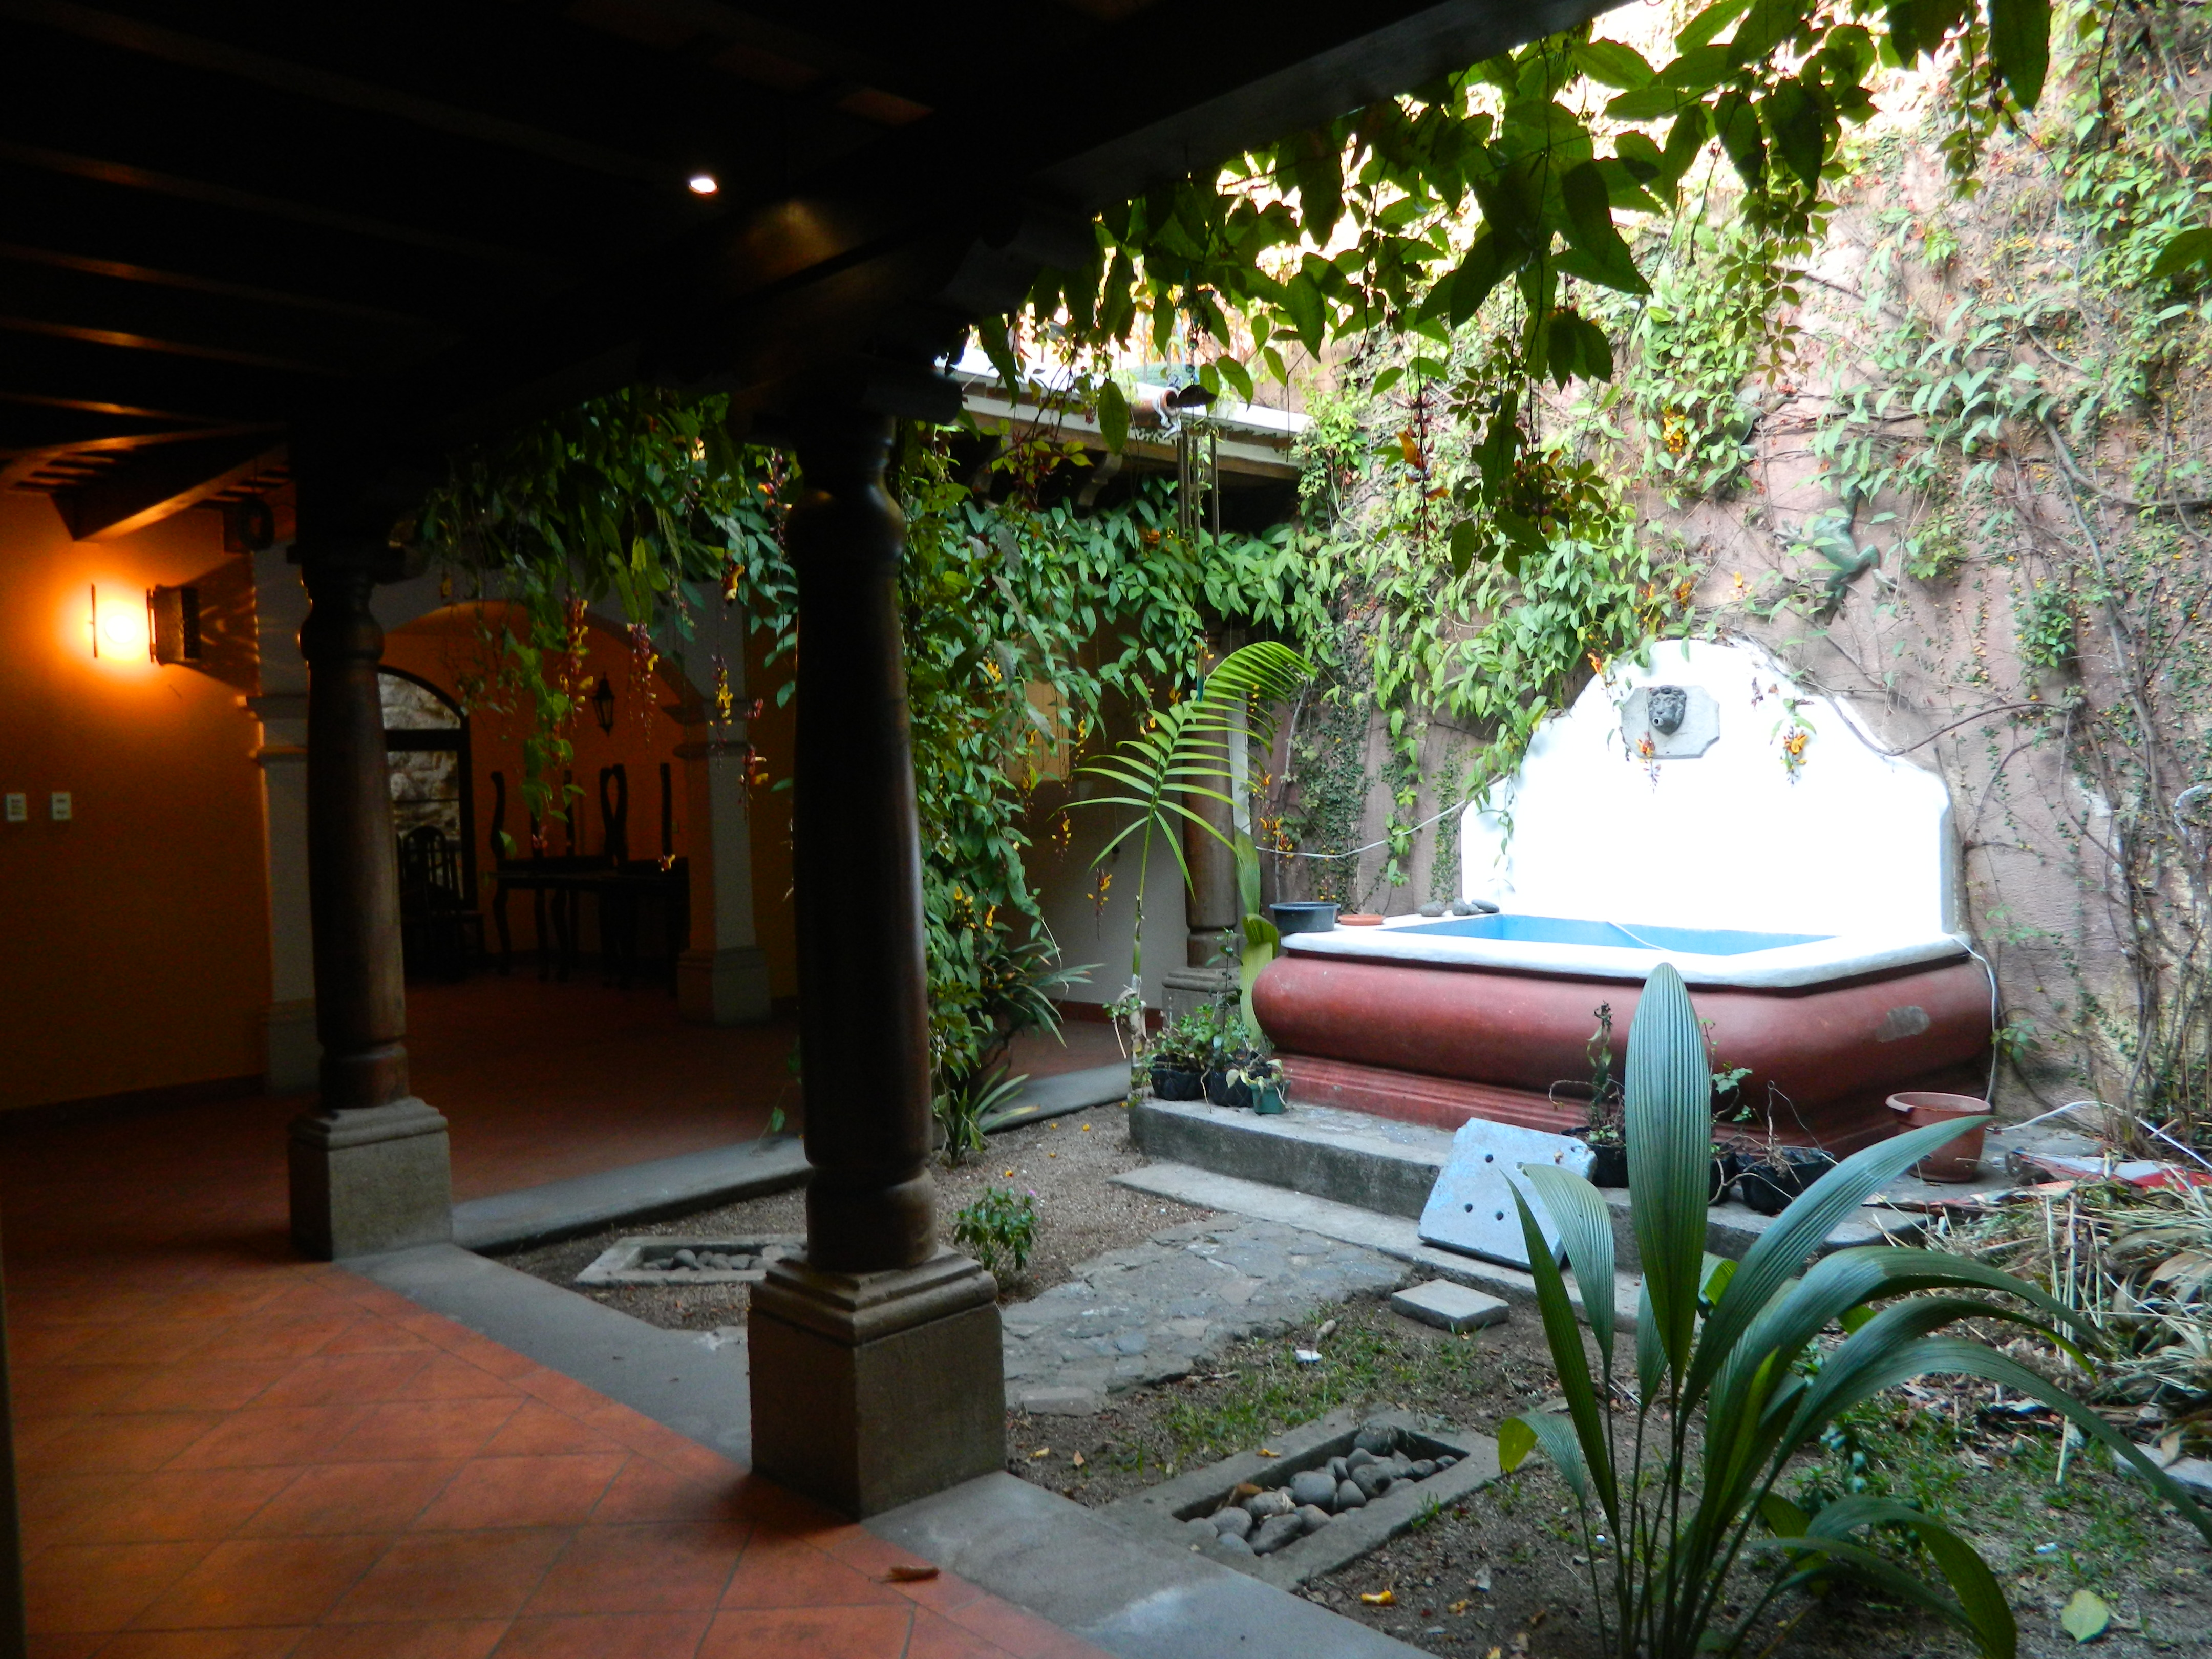 2397 GREAT HOUSE FOR RENT  IN THE CENTER OF ANTIGUA GUATEMALA, IDEALLY FOR BOUTIQUE HOTEL.